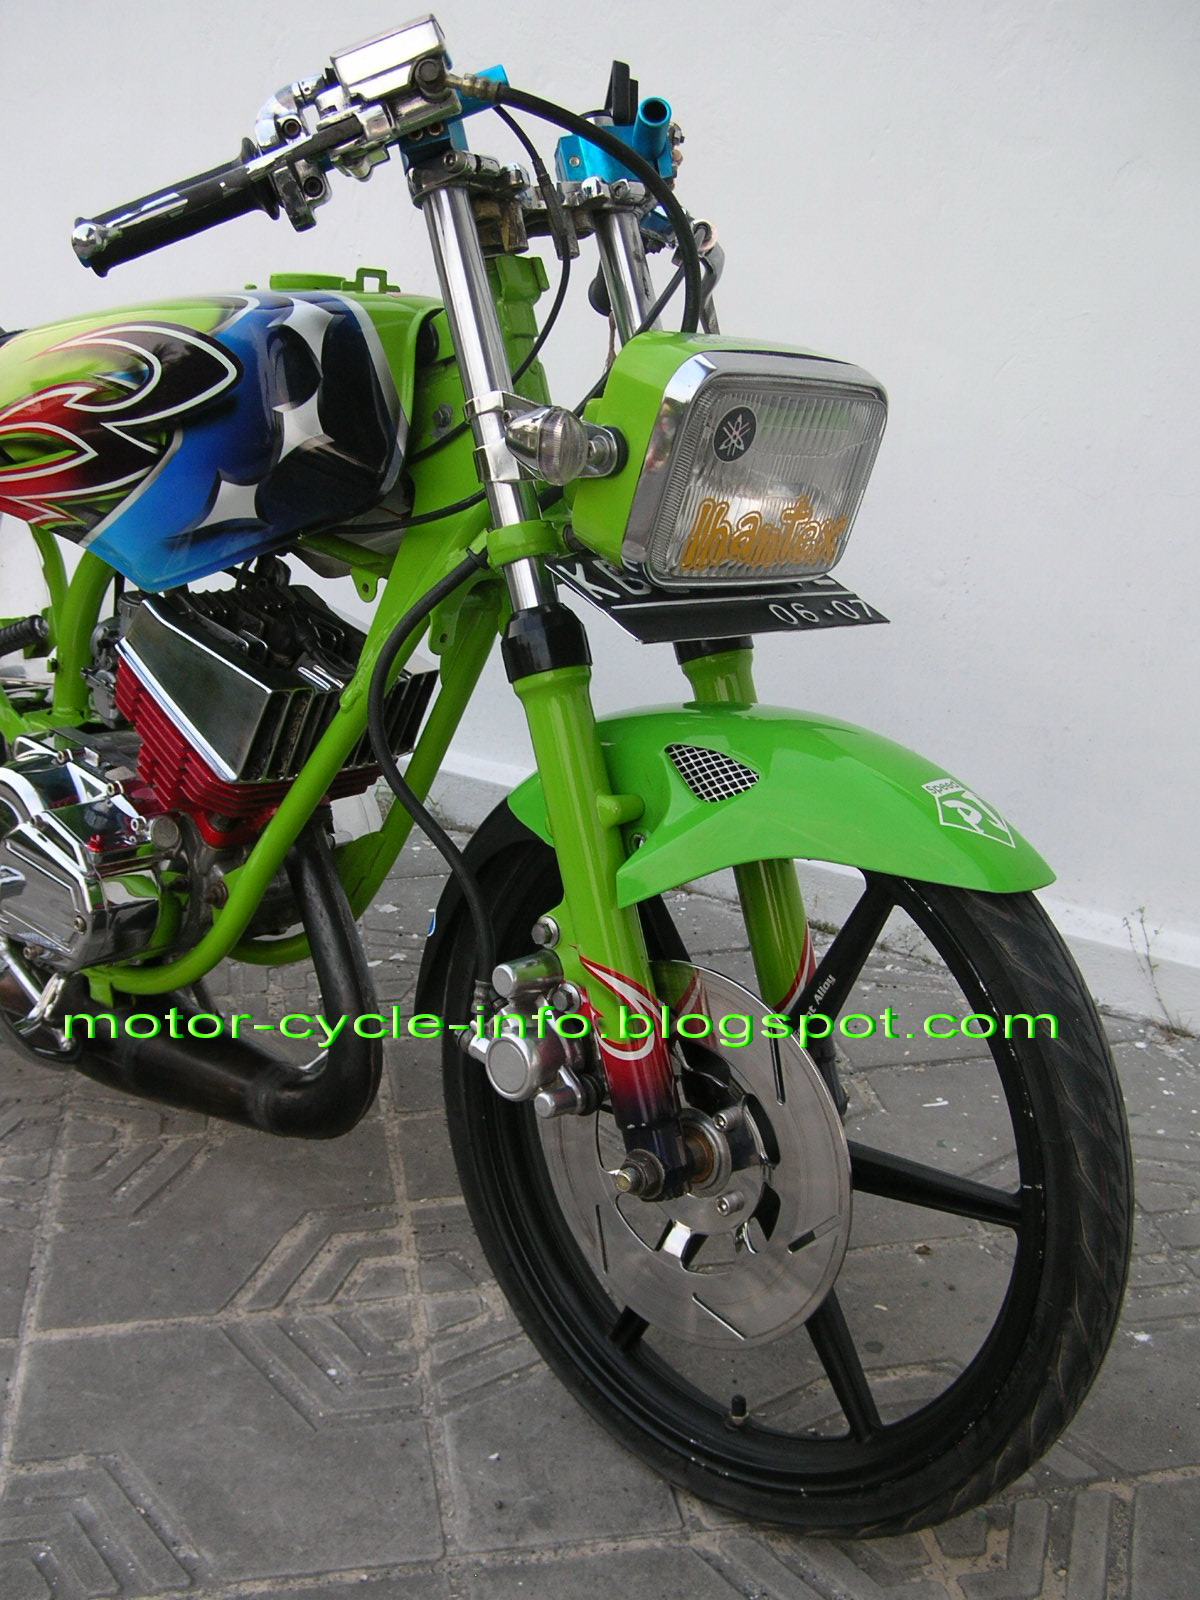 modifikasi motor rx king extreme airbrush